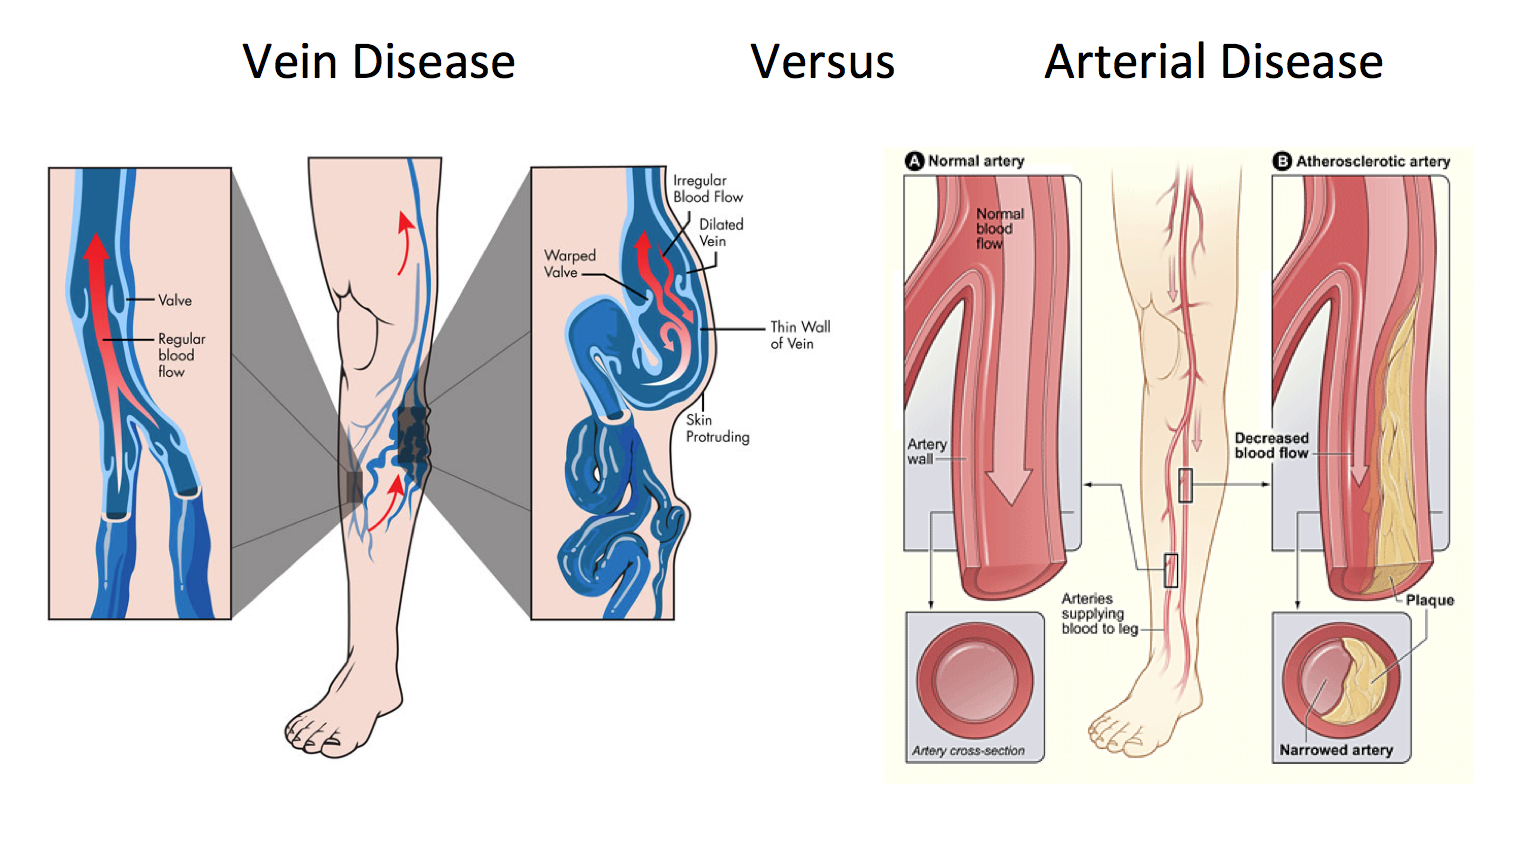 New York Vein Treatment Center Discuses Vein Diseases Vs  Arterial Diseases In A Newly Published